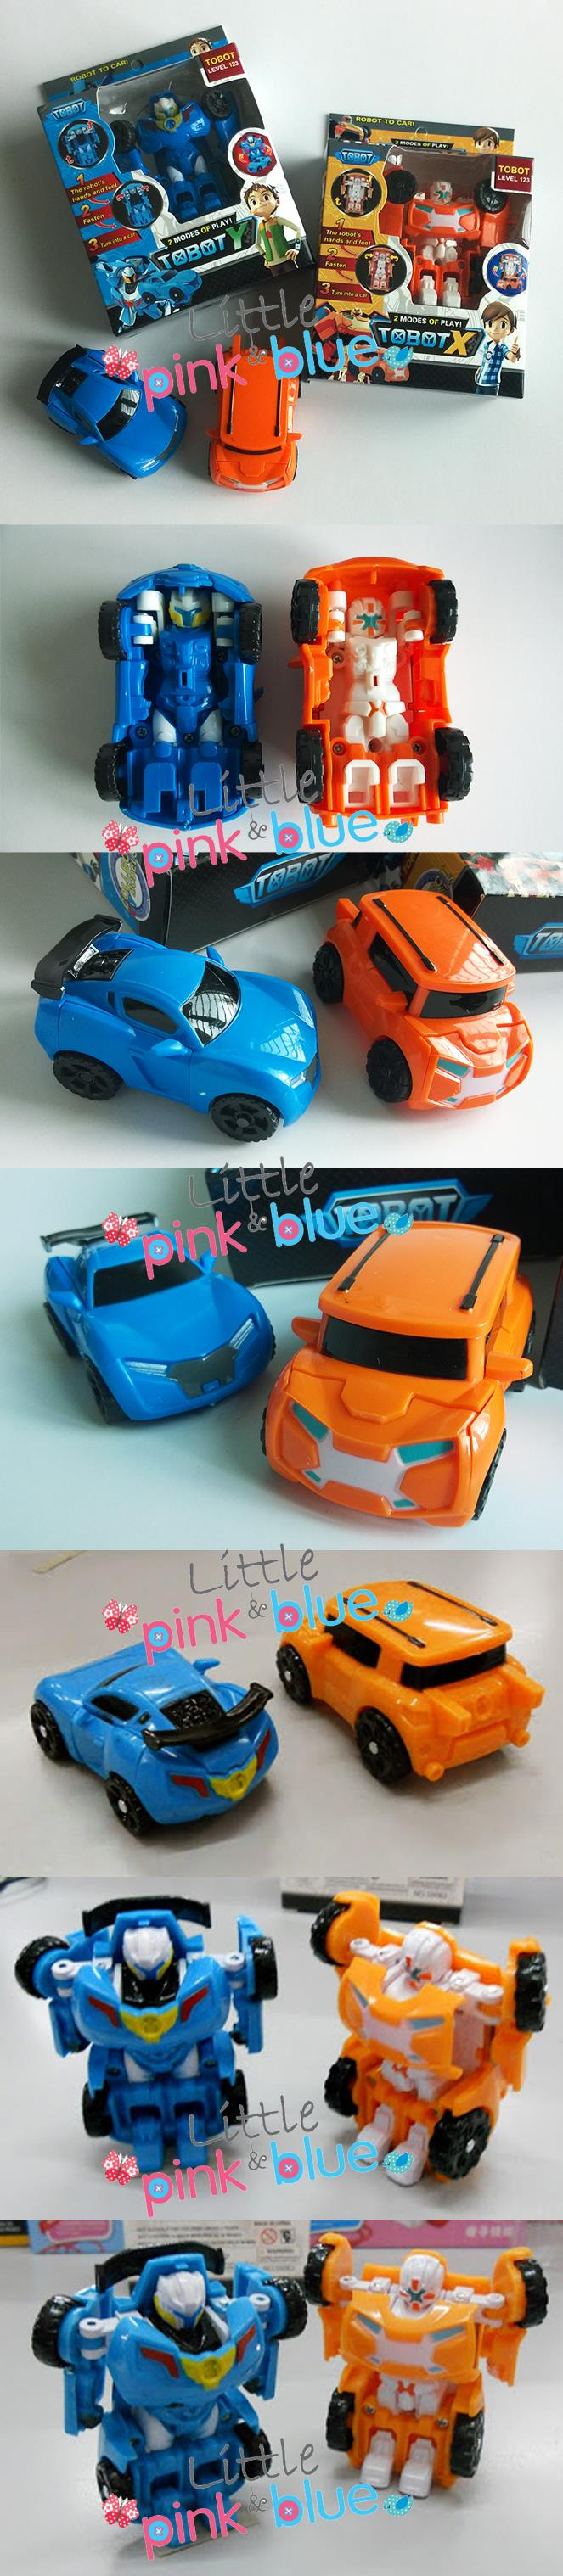 Tobot X & Tobot Y - (2 Pcs Set) Transformation Robot Car Toys